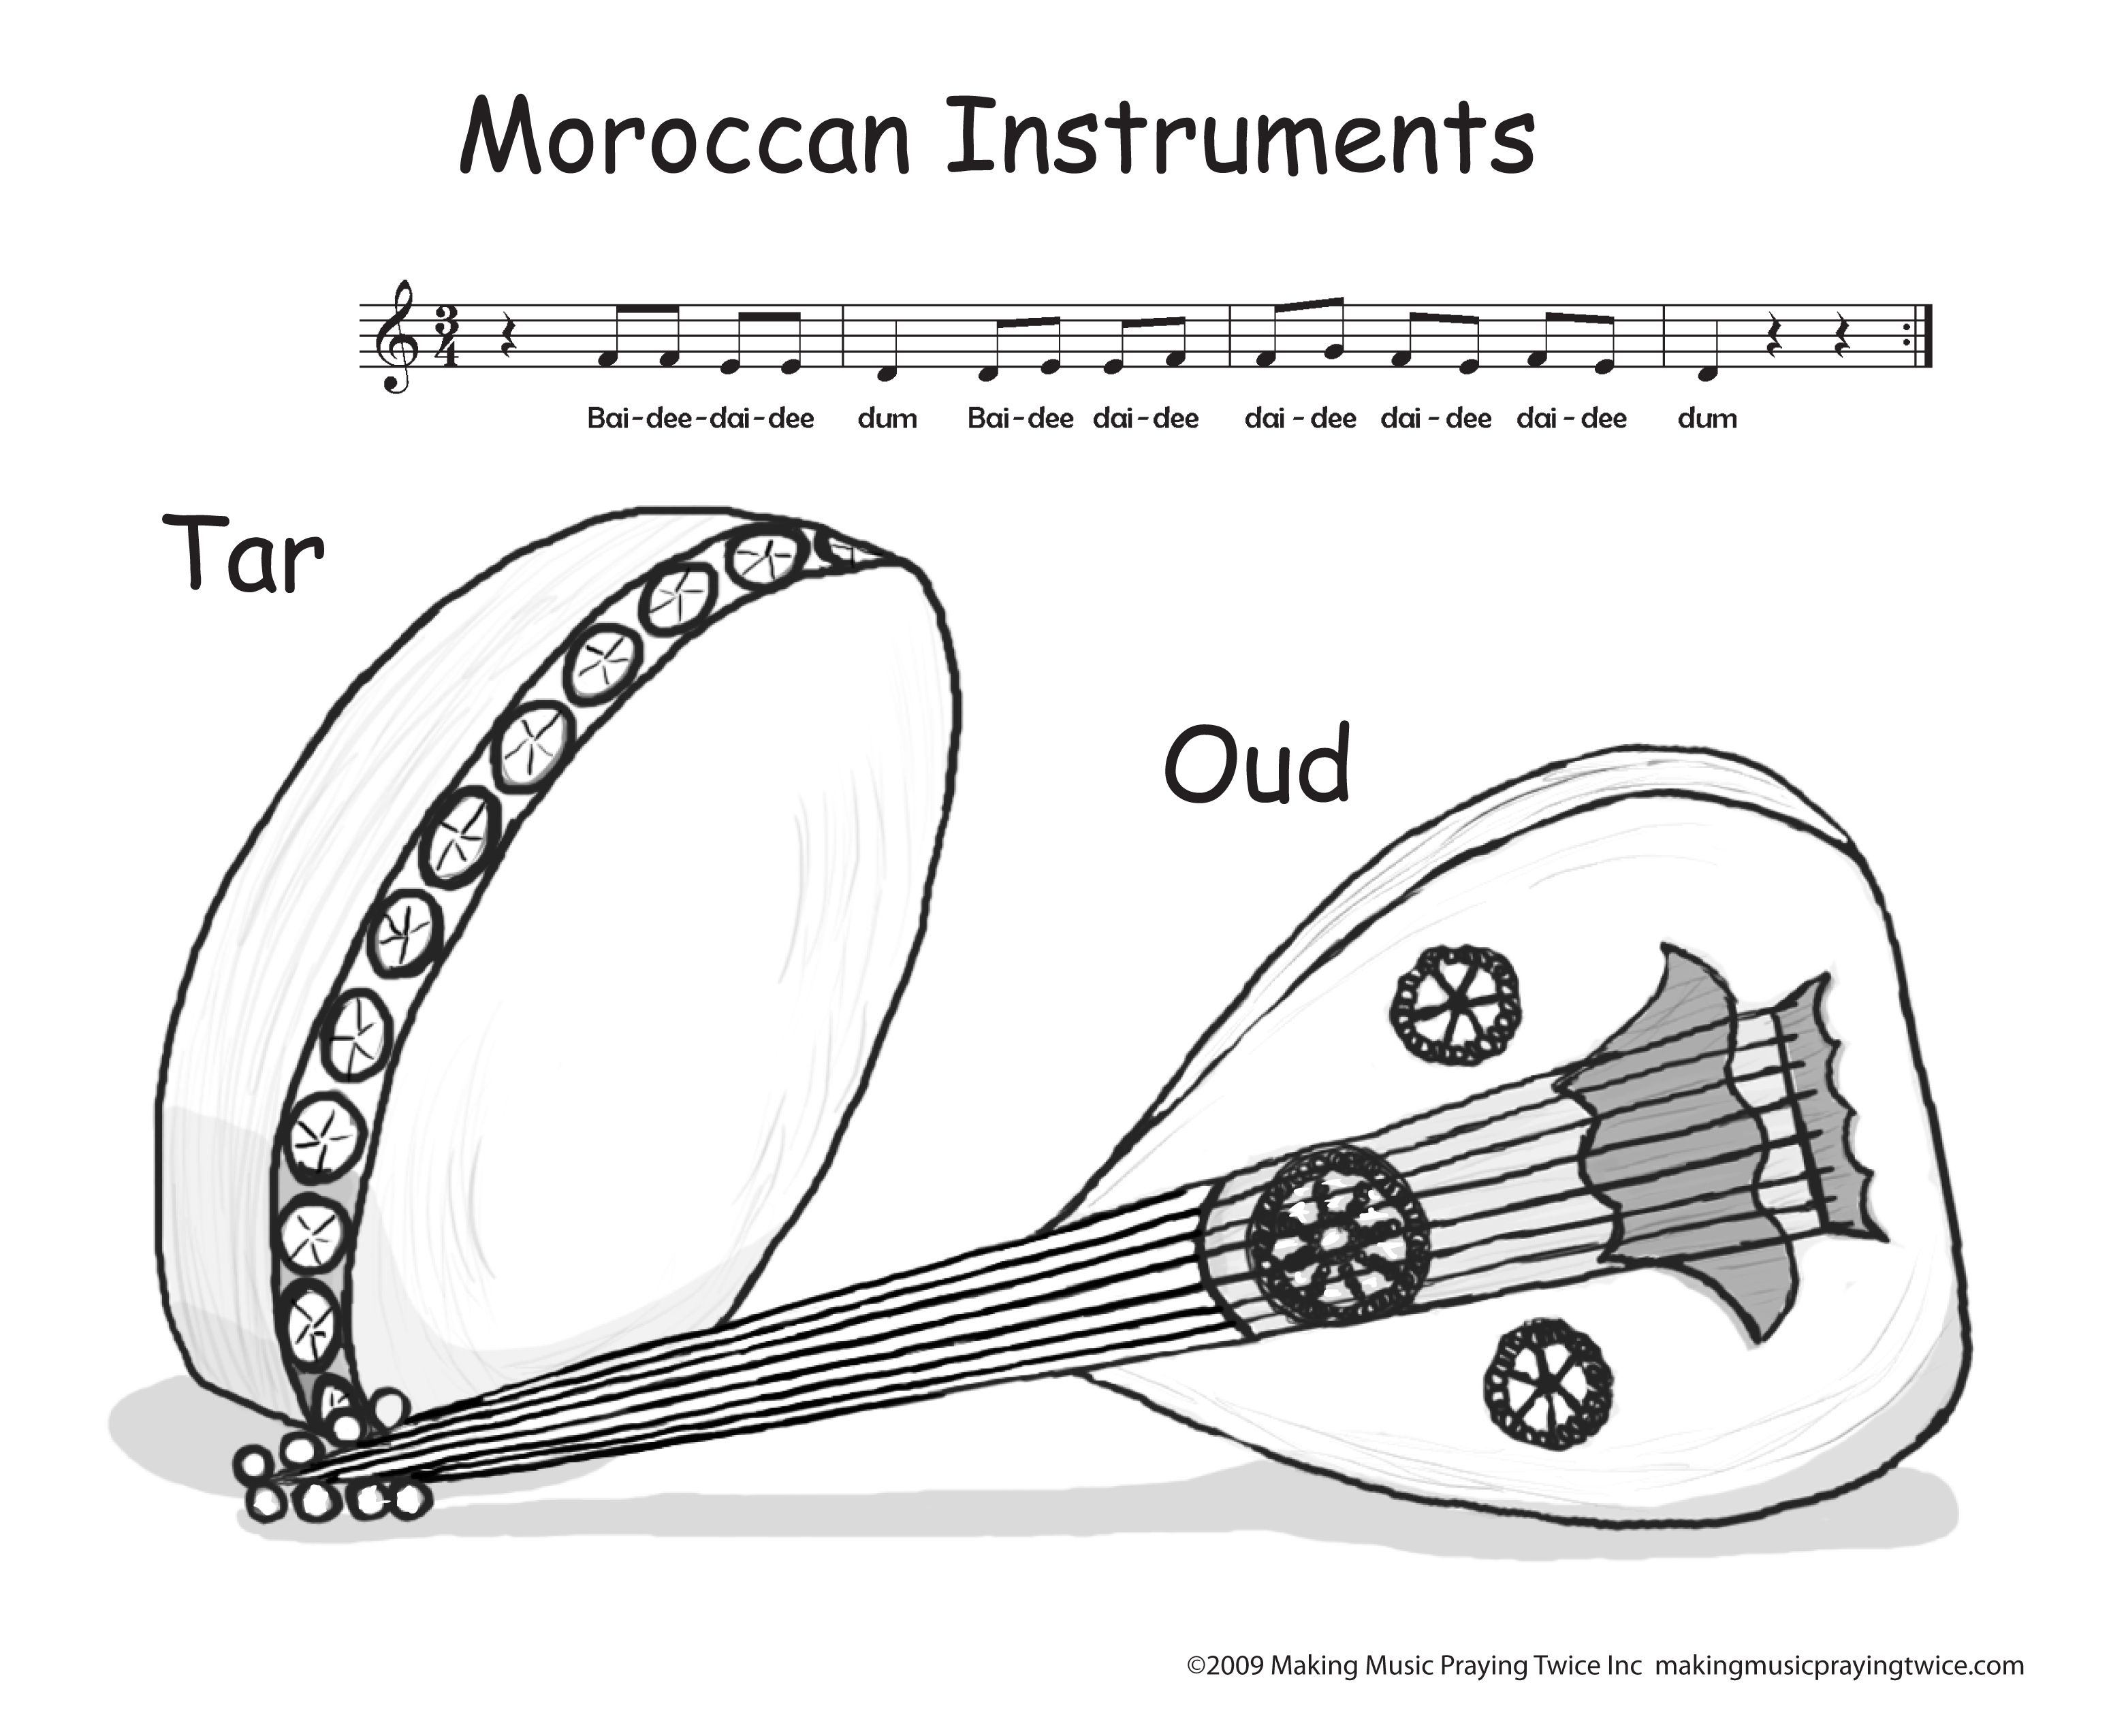 Http Mmpt Pictures S3 Amazonaws Com Mmpt Coloring Pages Moroccan